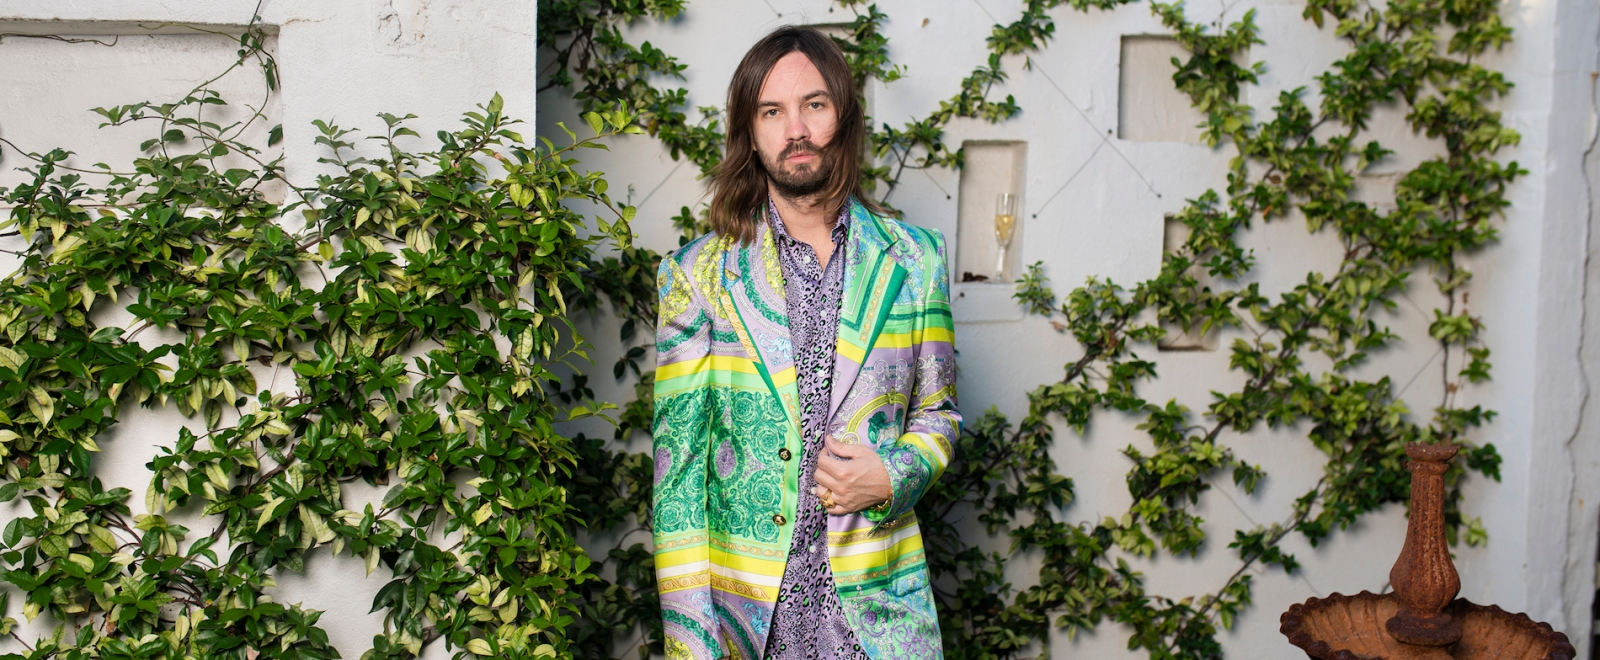 tame-impala-kevin-parker-getty-full.jpg